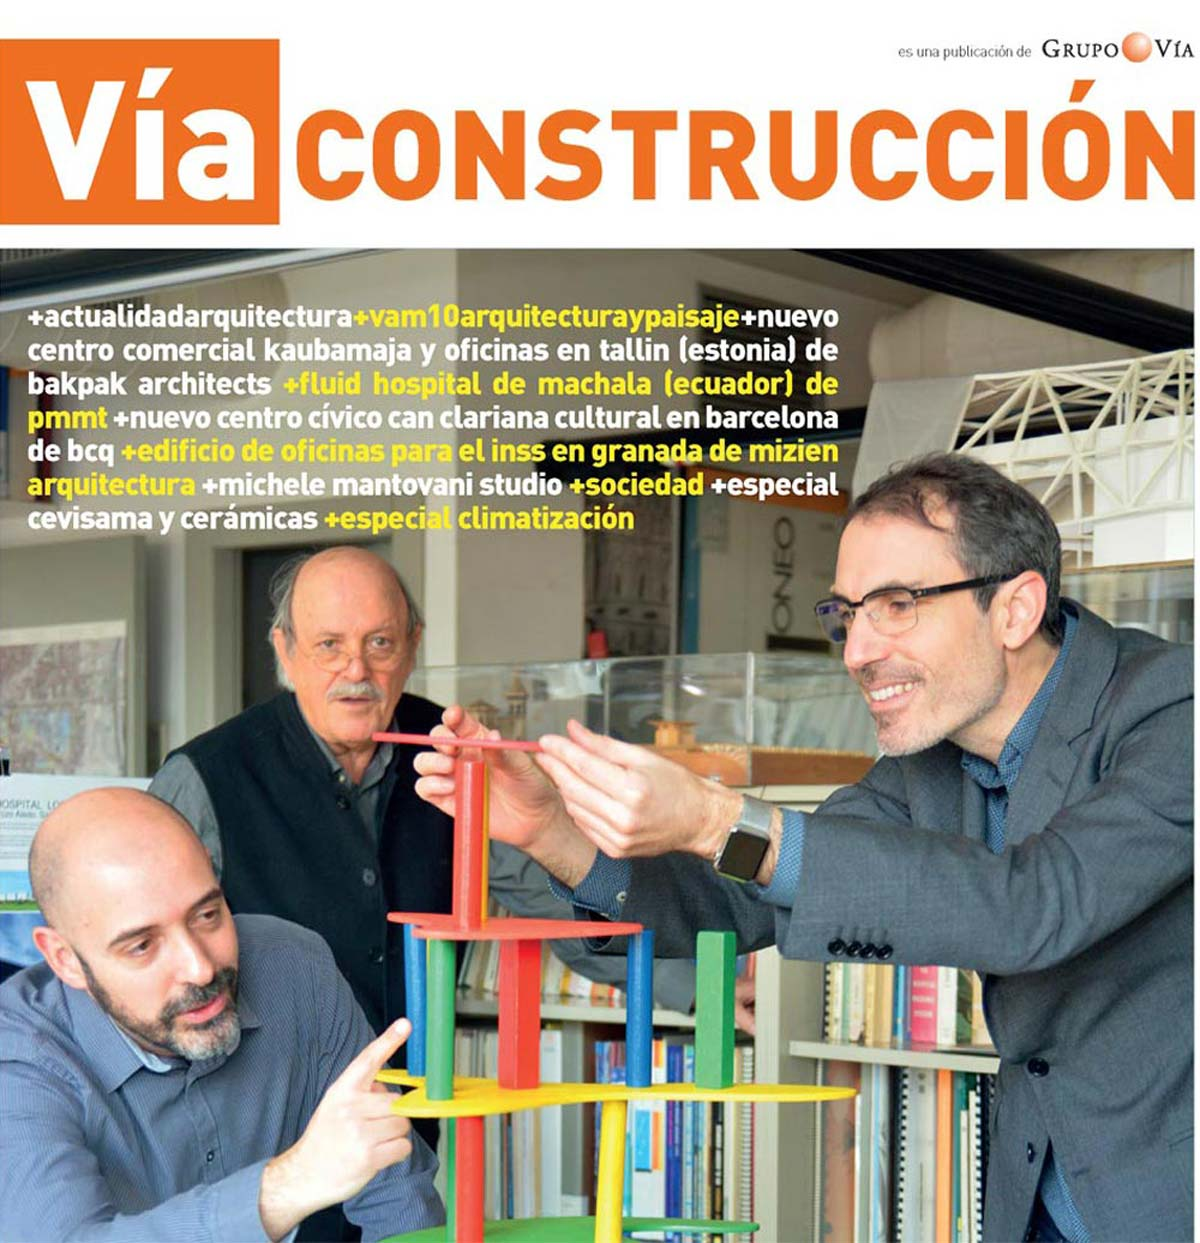 portada-revista-via-construccion-00